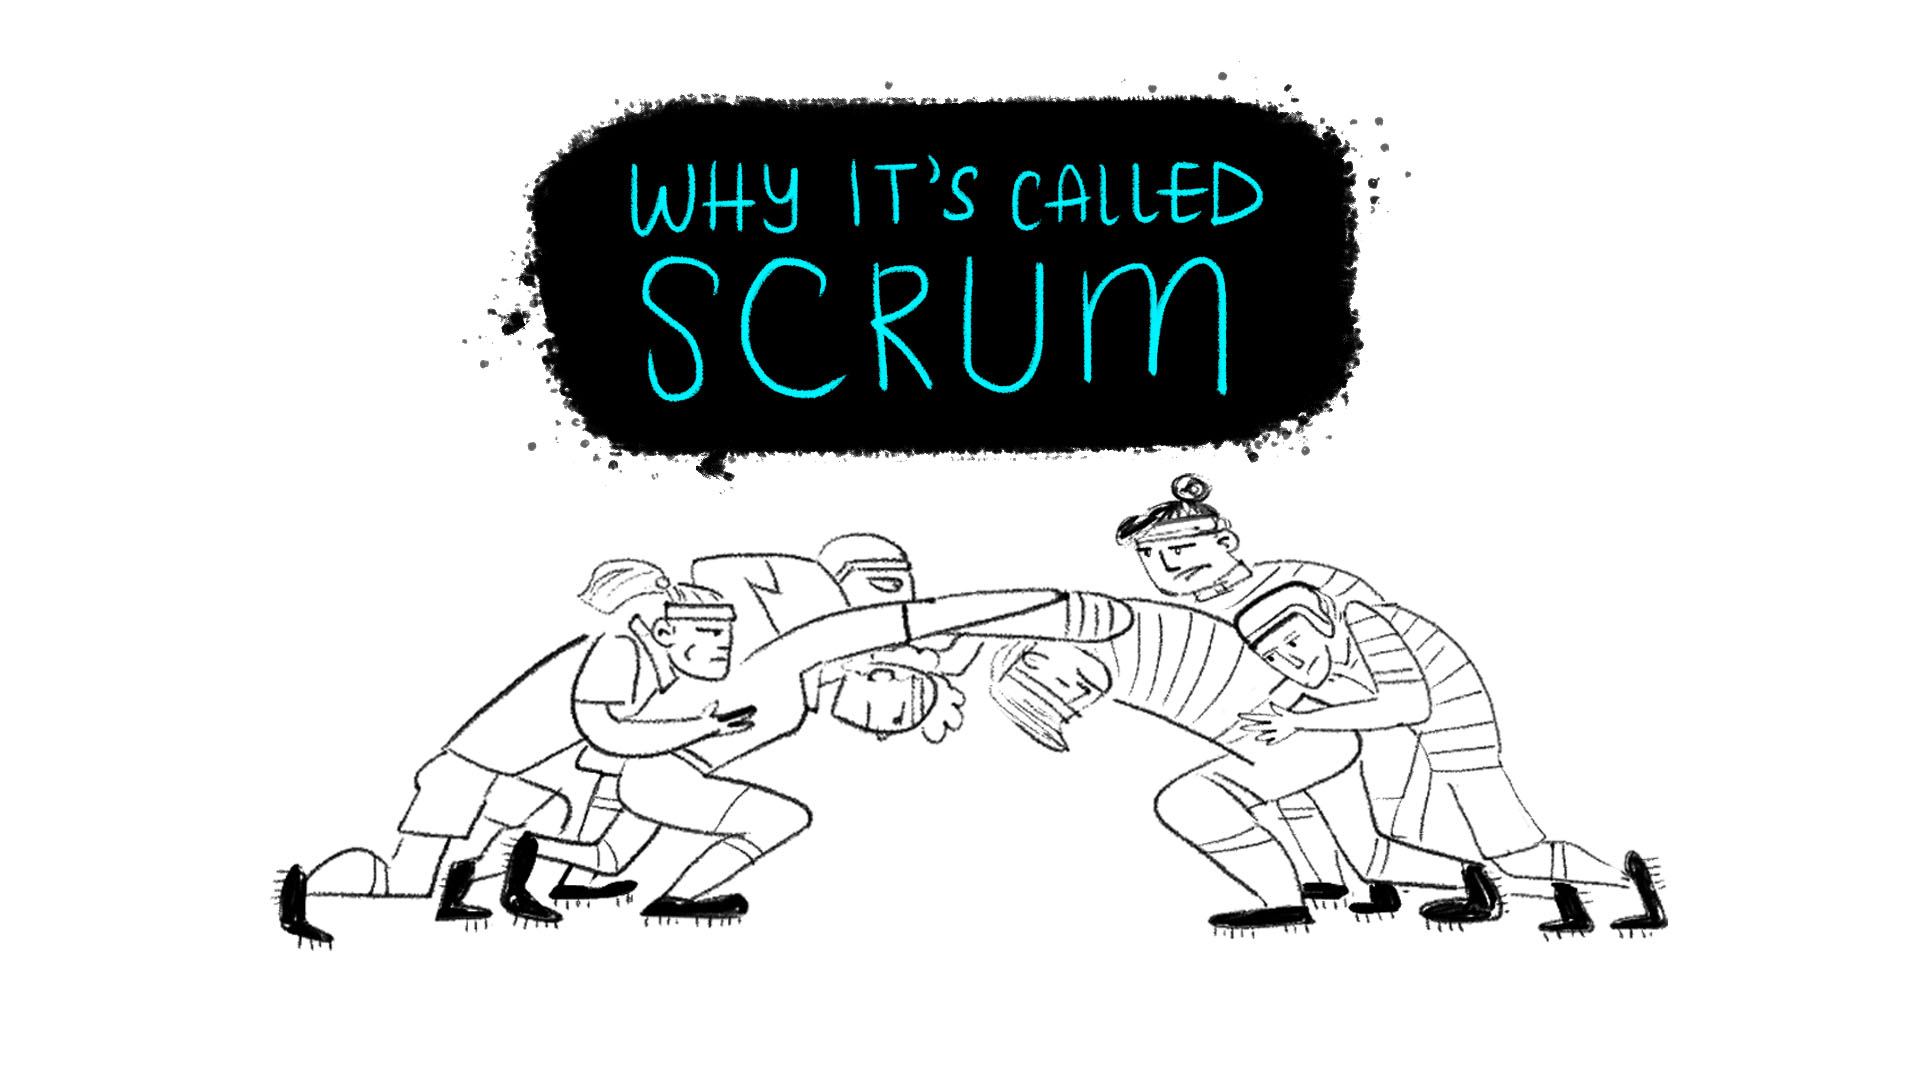 Why it's called scrum